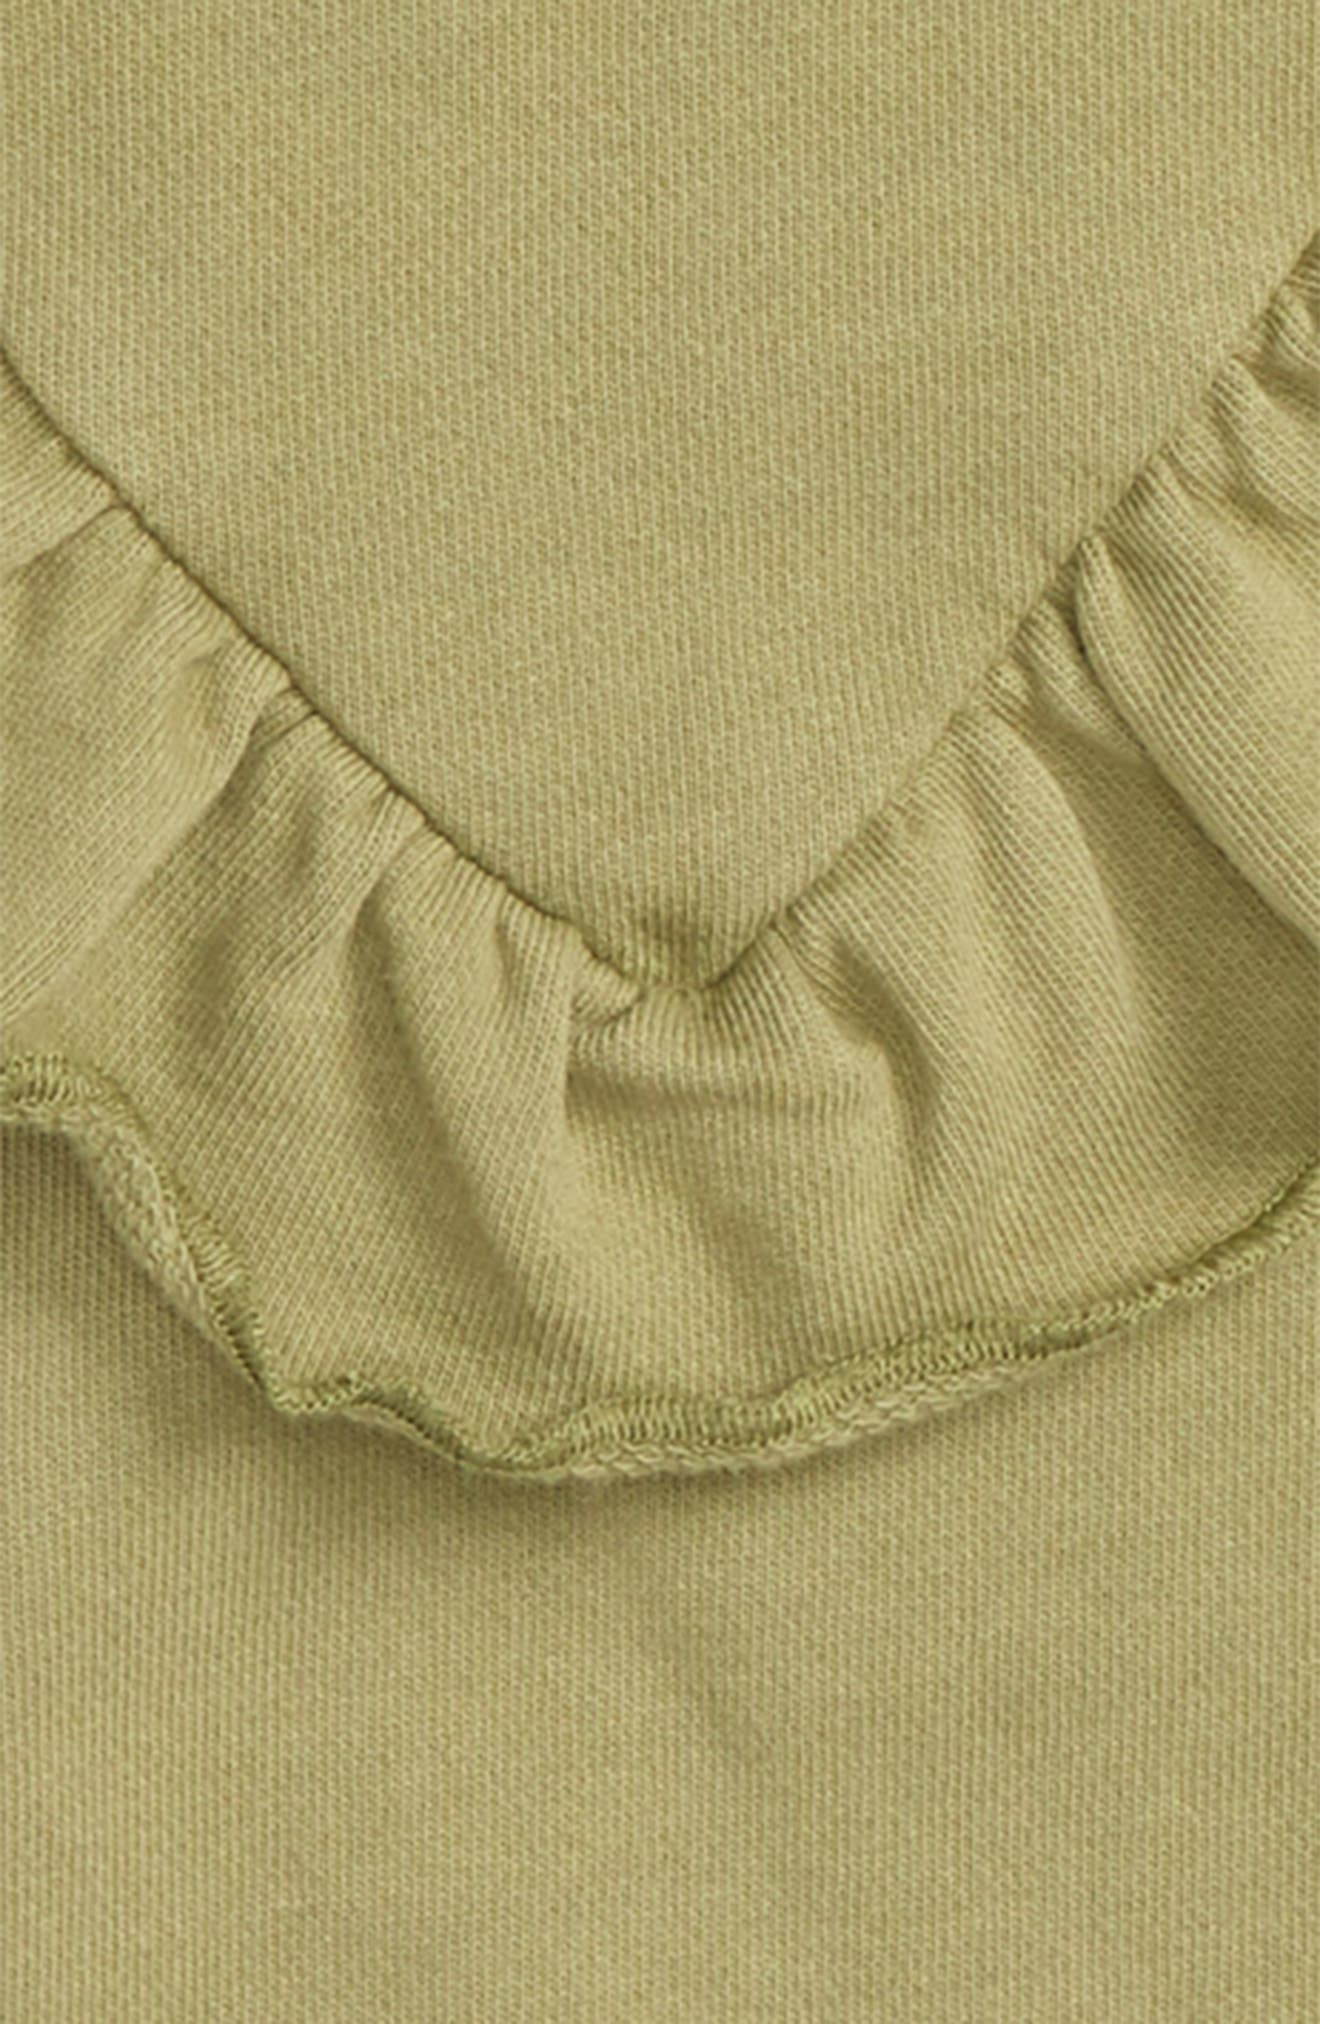 Ruffle Crewneck Pullover,                             Alternate thumbnail 2, color,                             Faded Olive